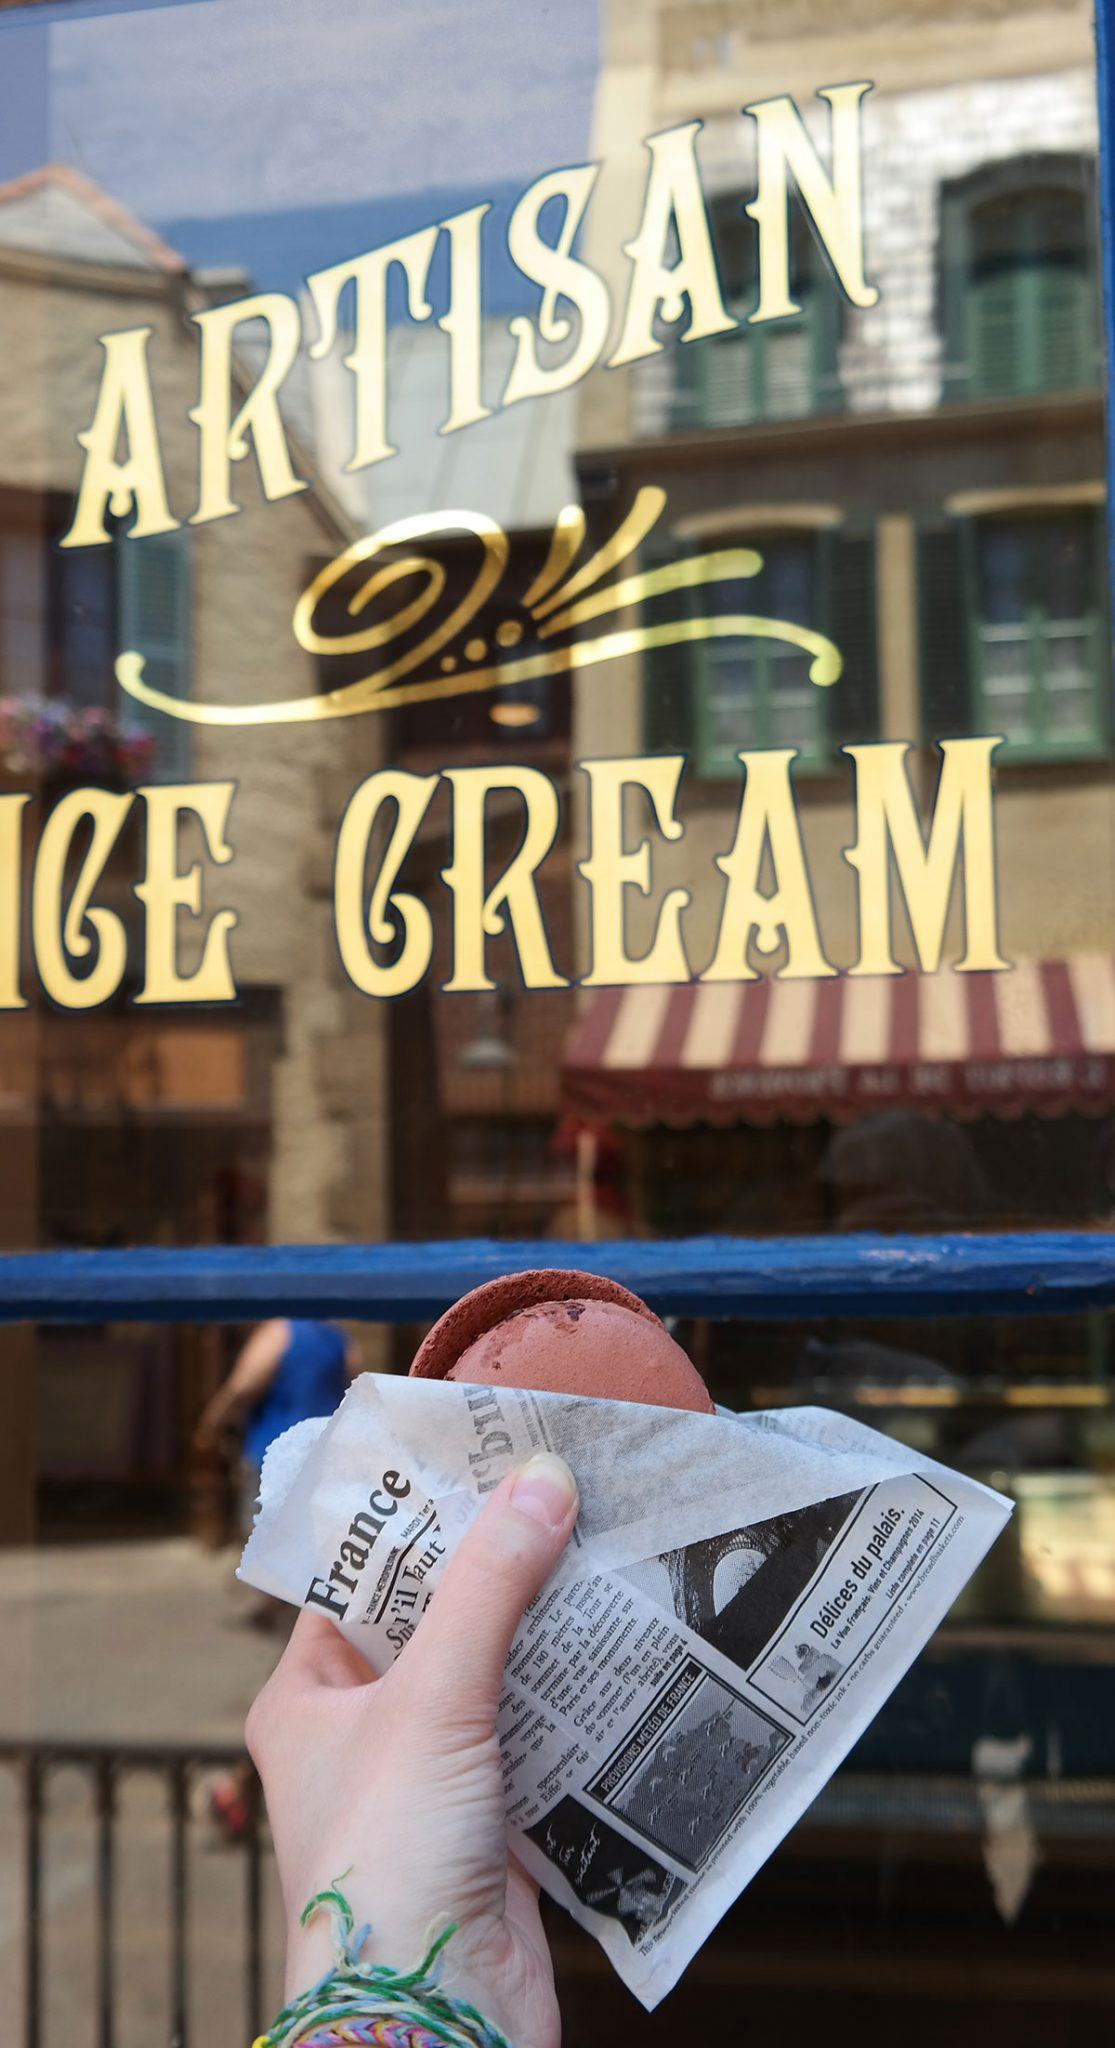 you can find L'Artisan des Glaces, an ice cream shop with 16 different flavors of ice cream (and sorbet)